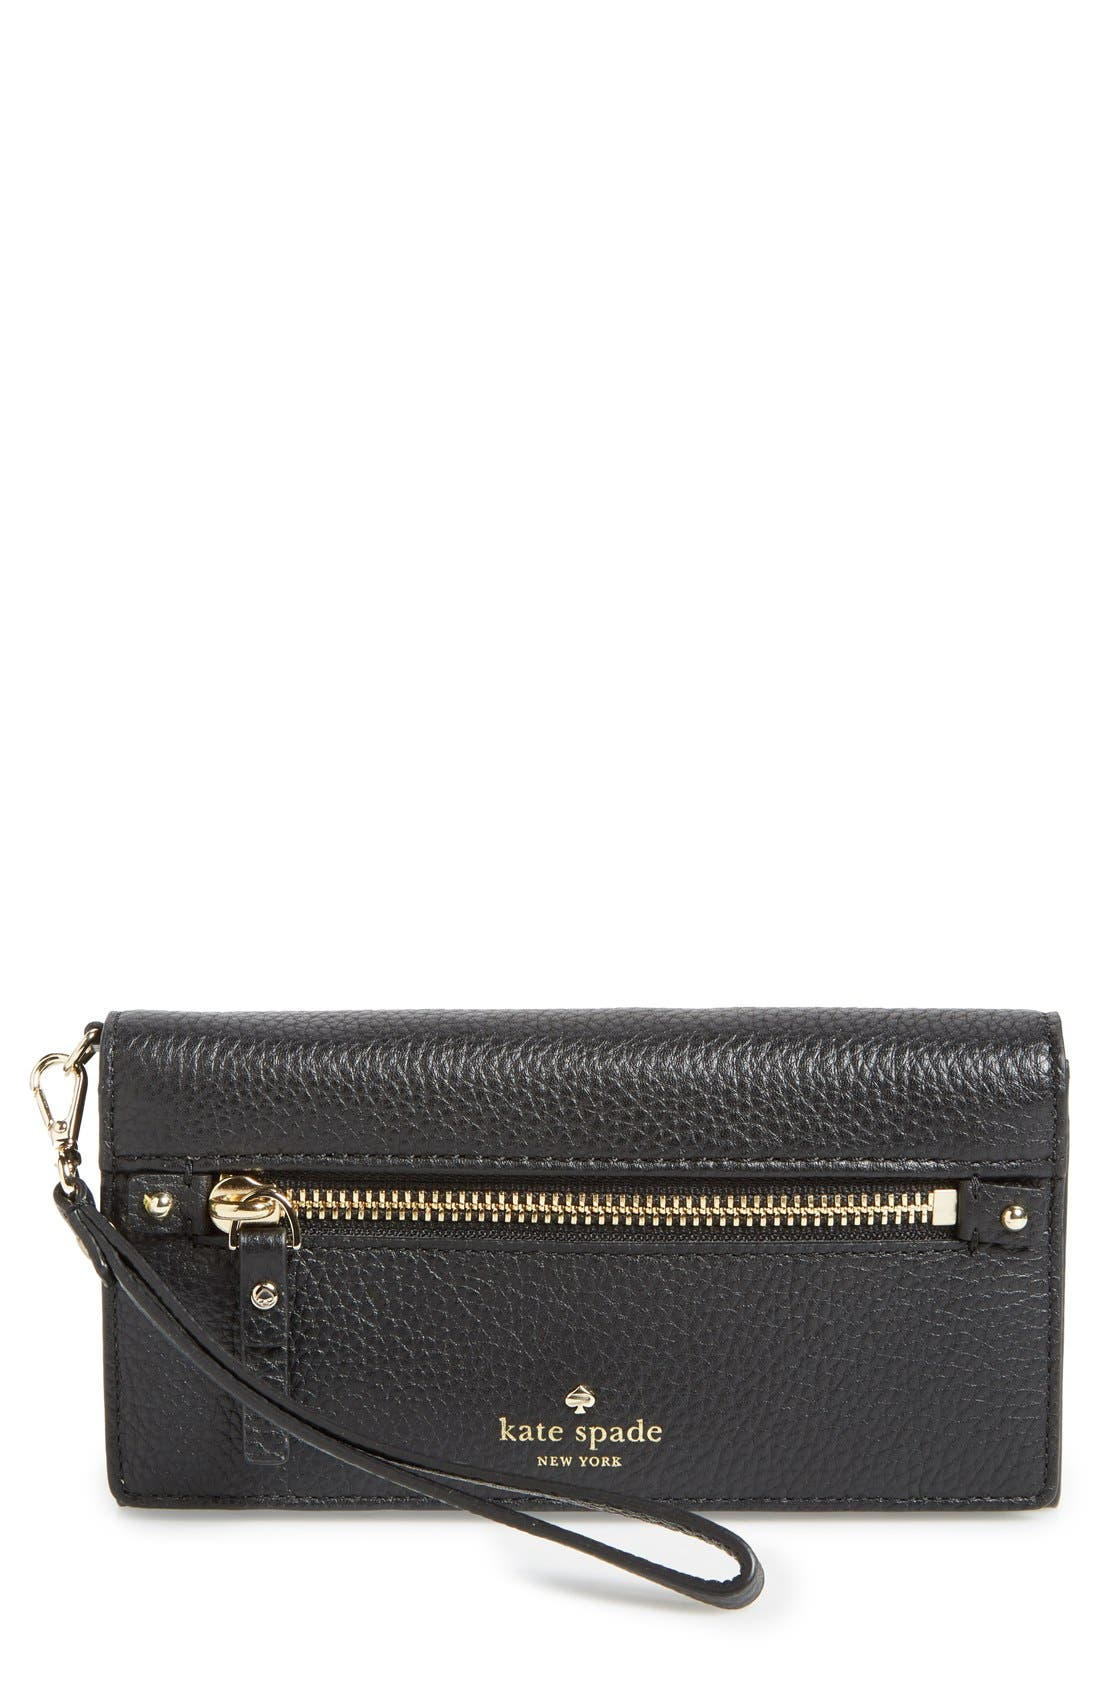 Main Image - kate spade new york 'cobble hill - rae' leather wristlet wallet